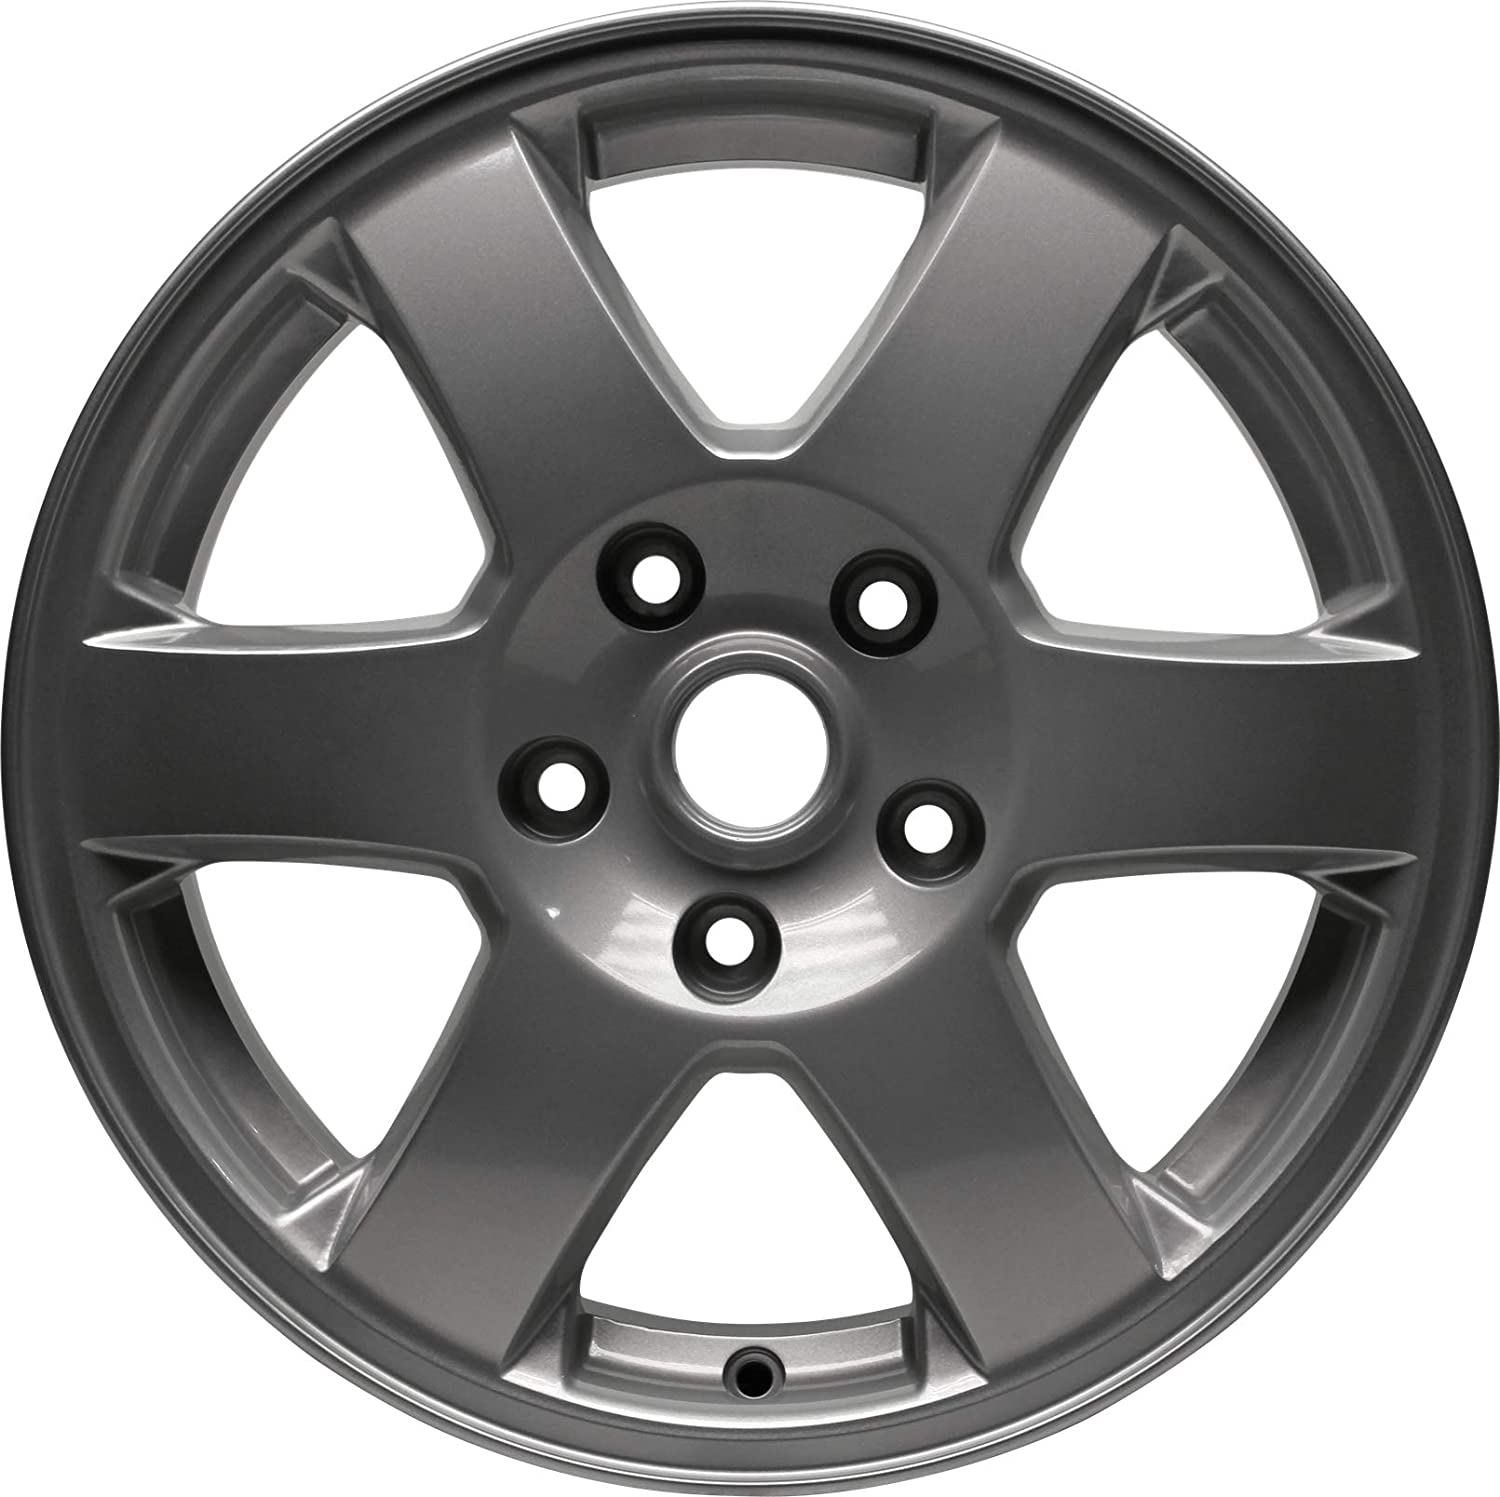 Partsynergy Replacement For New Aluminum Alloy Wheel Rim 17 Inch Fits 07-18 Jeep Wrangler 5 Spokes 5-127mm